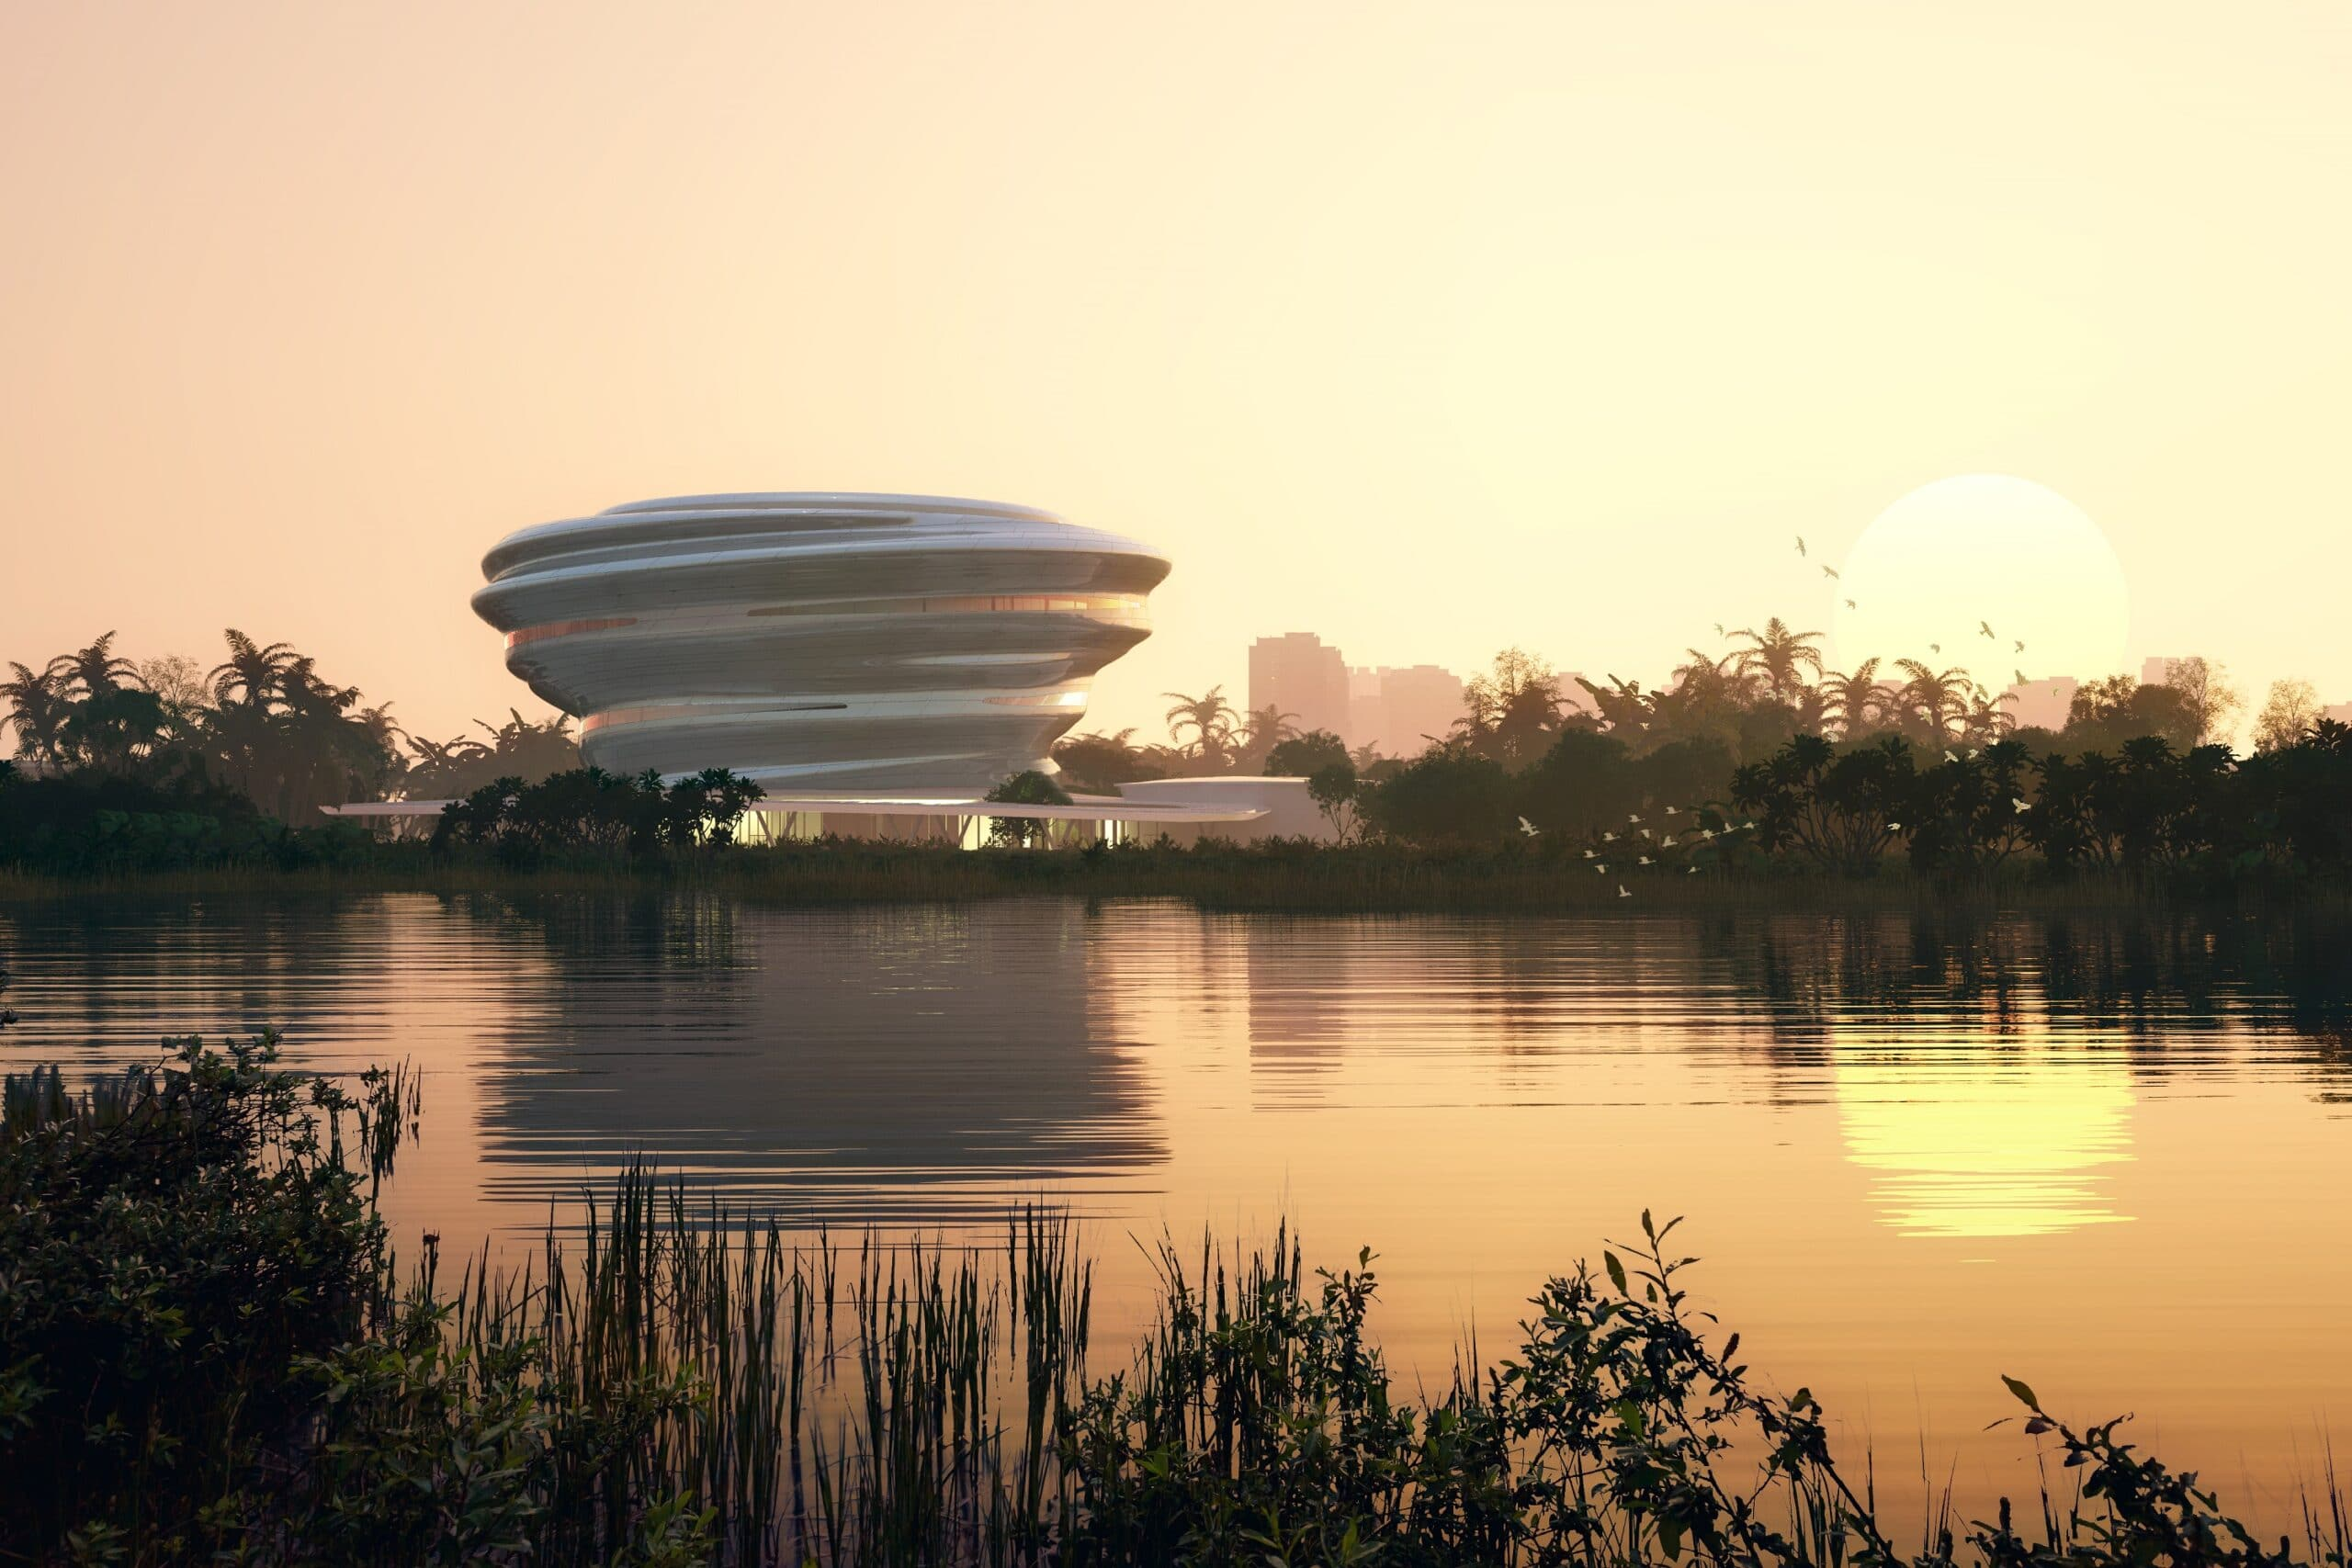 Hainan Science and Technology Museum: MAD Architects rivela il design